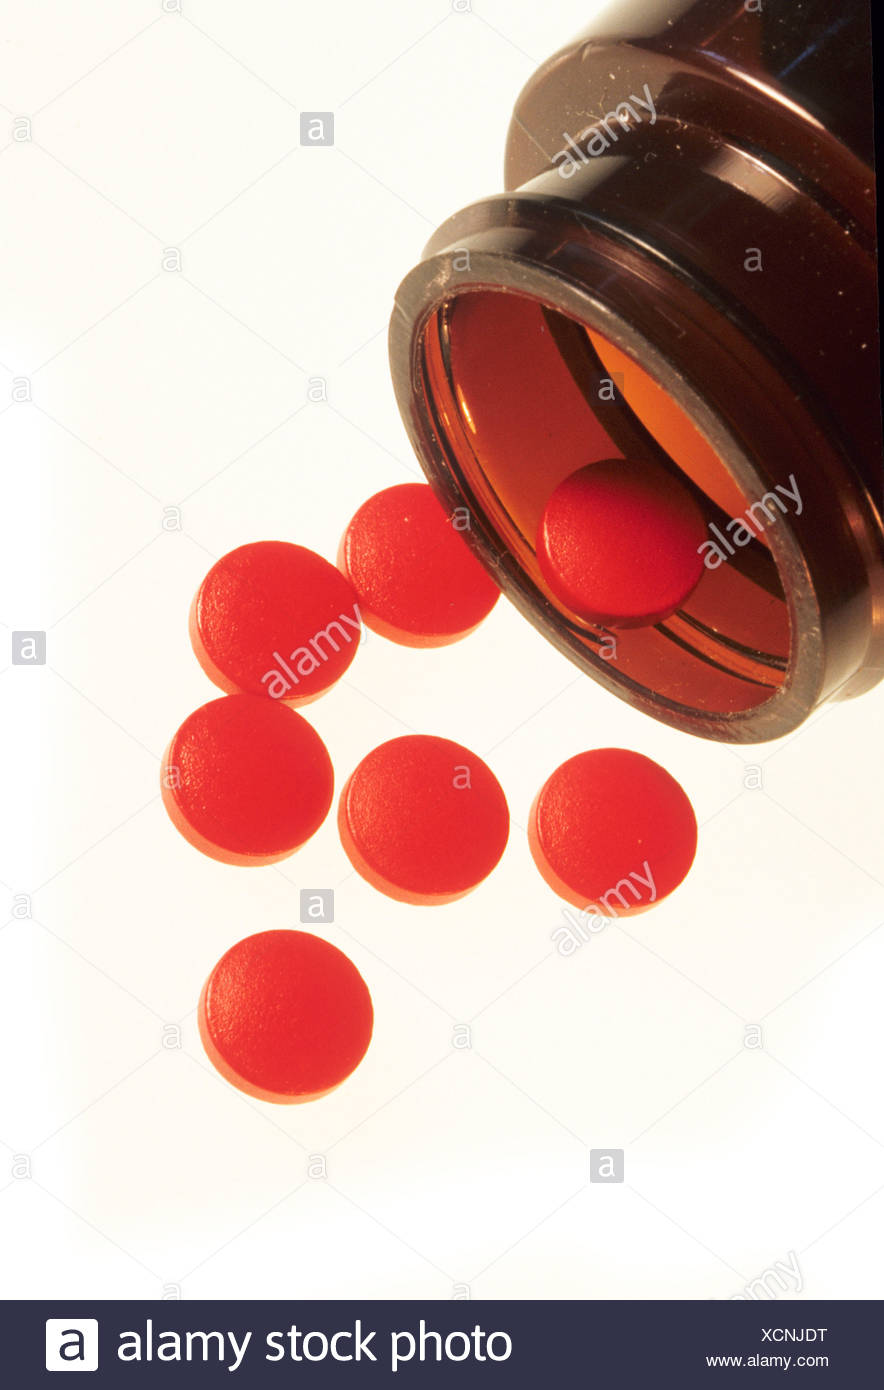 RED DYE FERROUS SULFATE IRON SUPPLEMENT - Stock Image